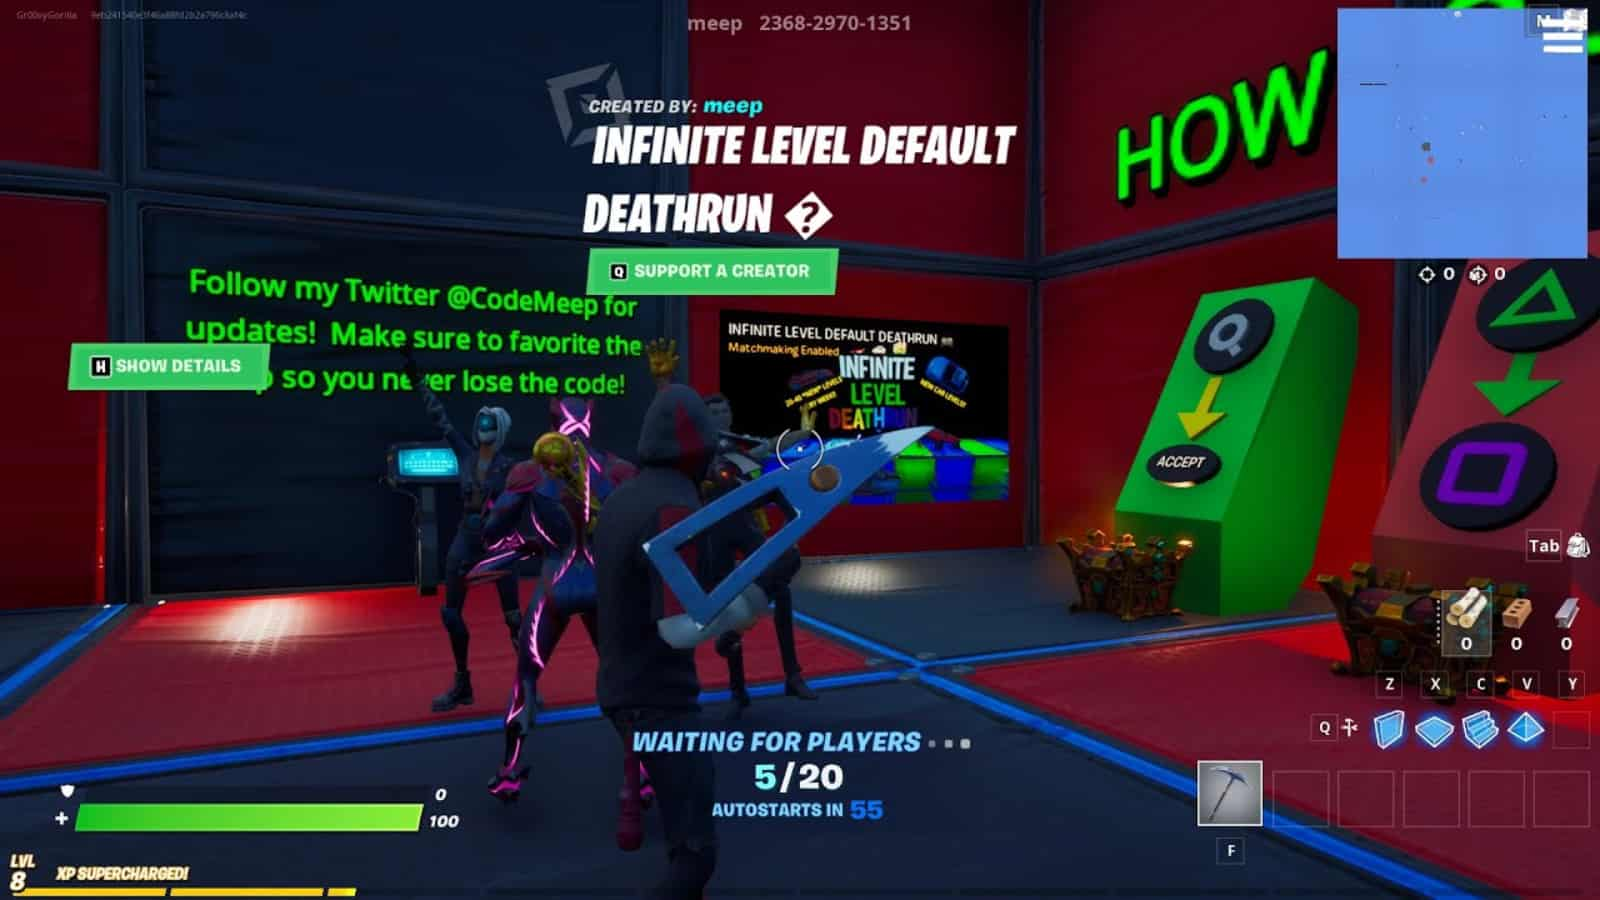 Fortnite Infinite Level Default Deathrun: New Creative Map Code and All About it